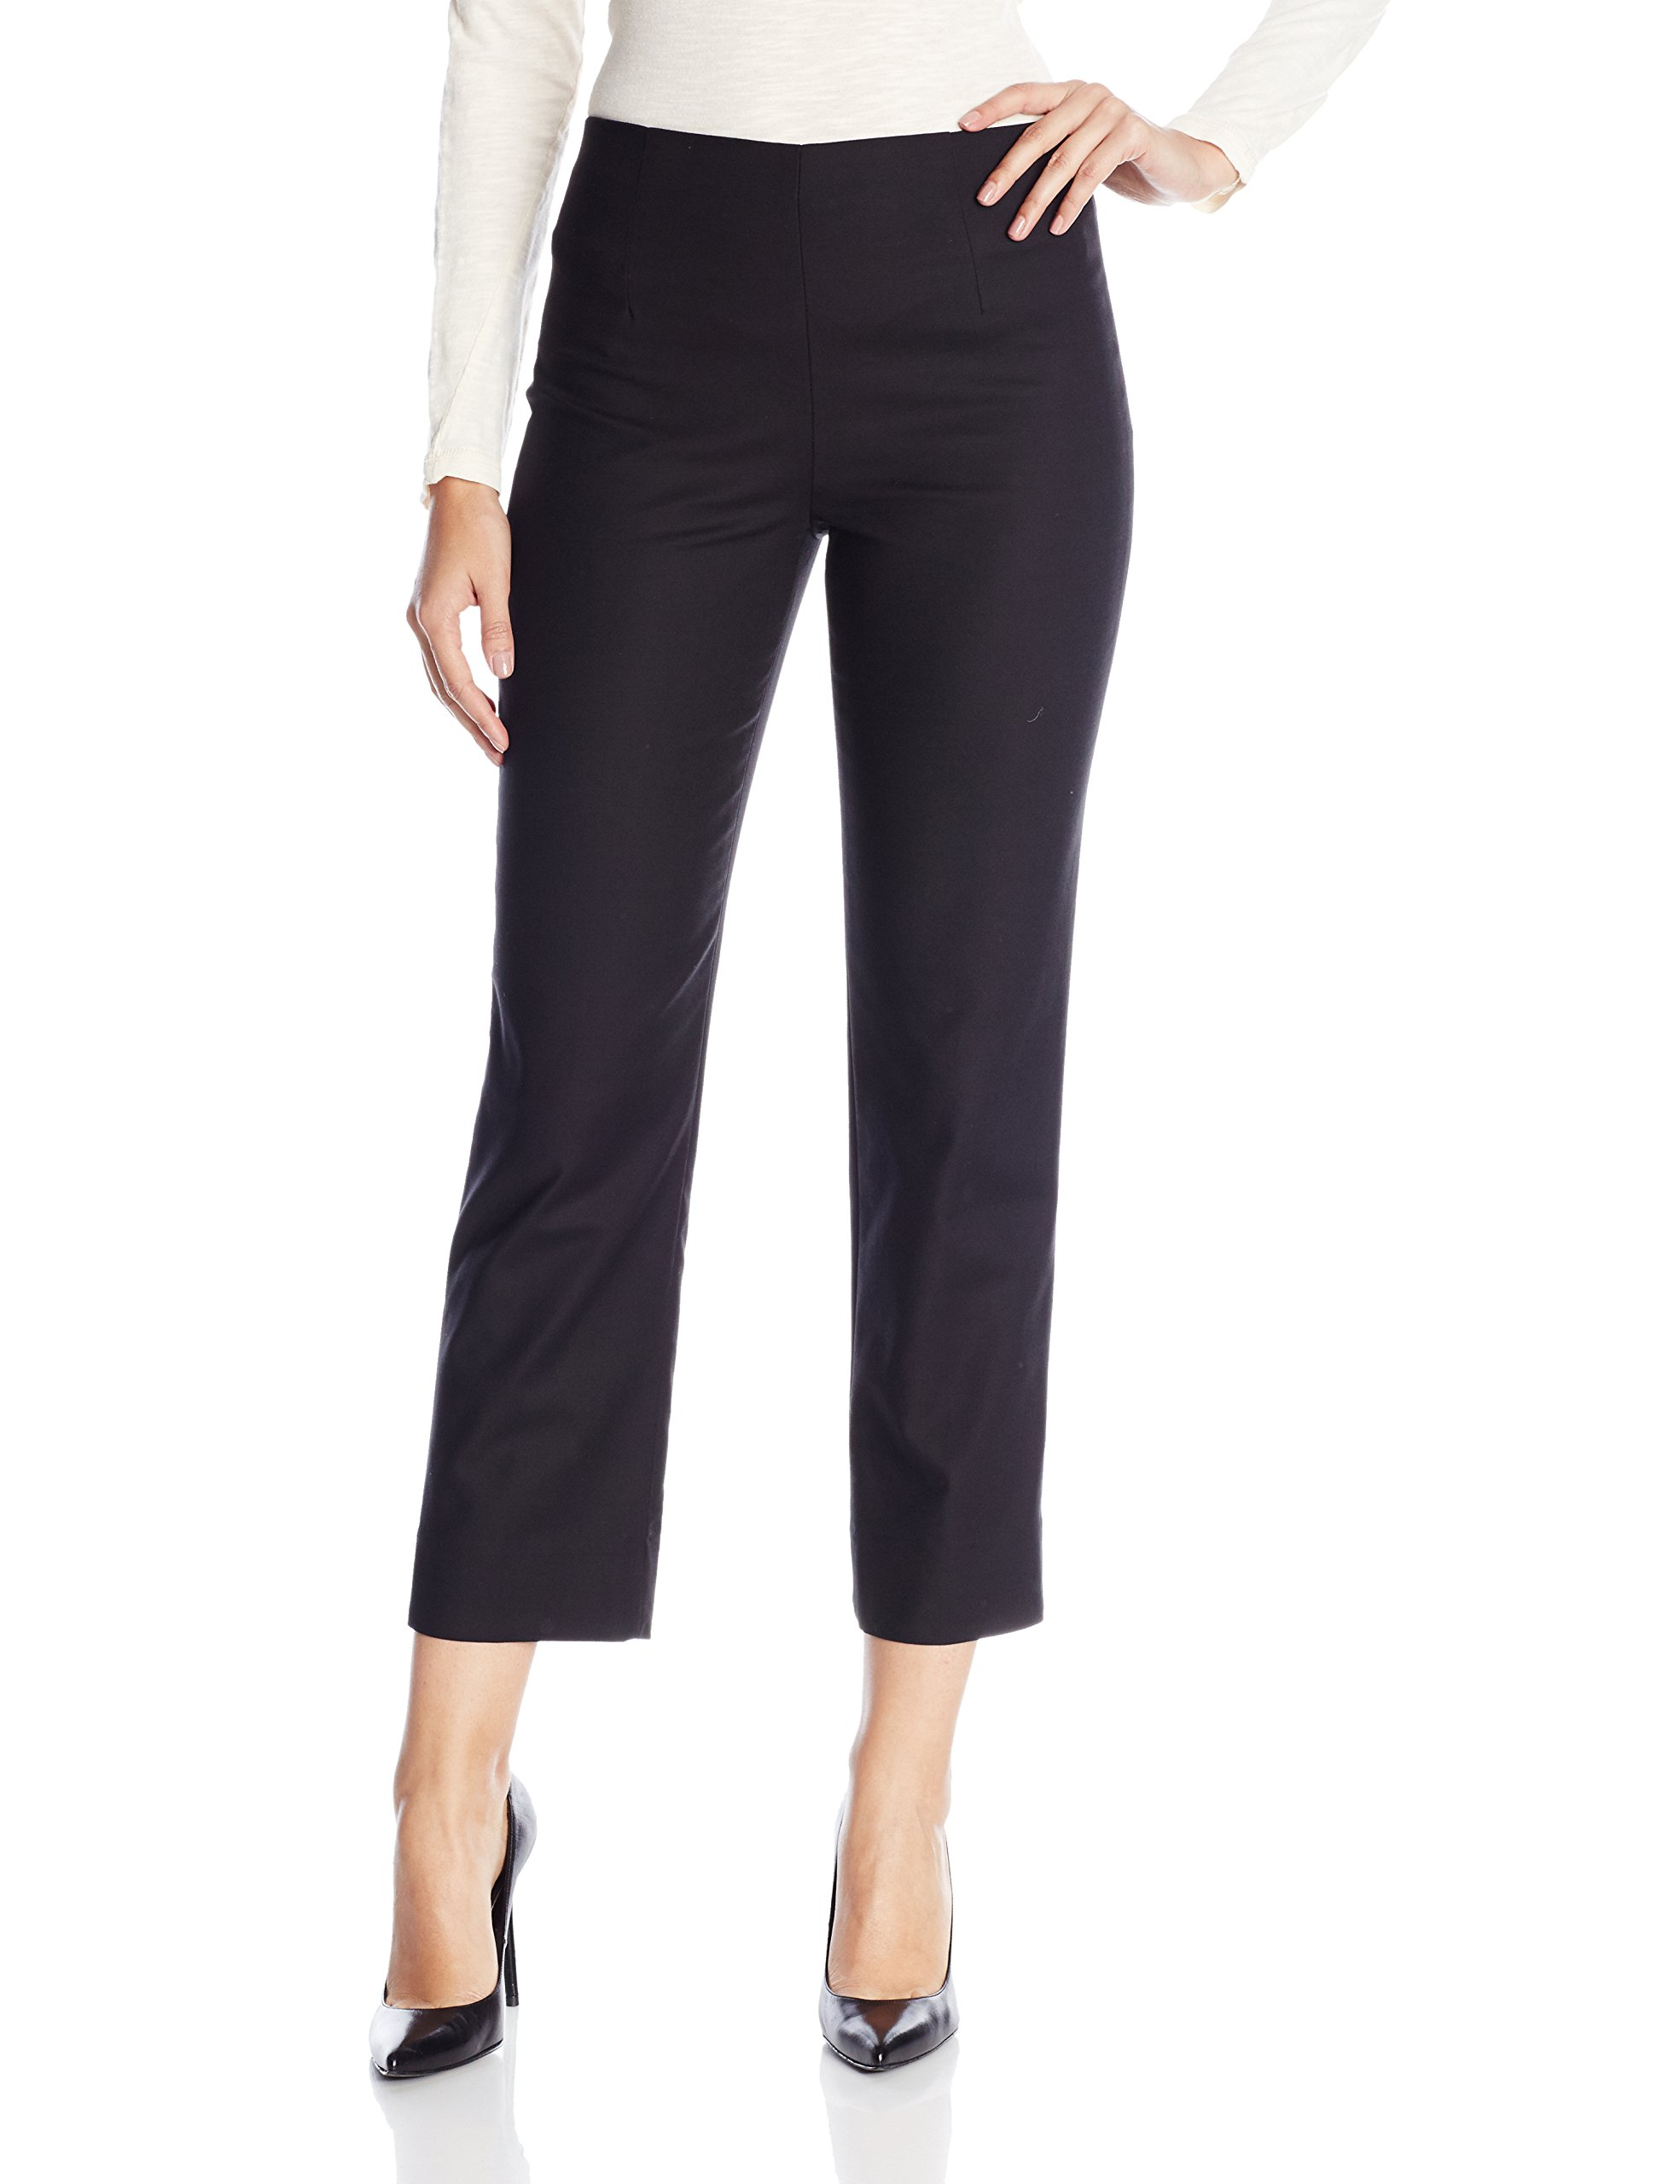 NIC+ZOE Women's Perfect Pant Side Zip Ankle Length, Black Onyx, 6